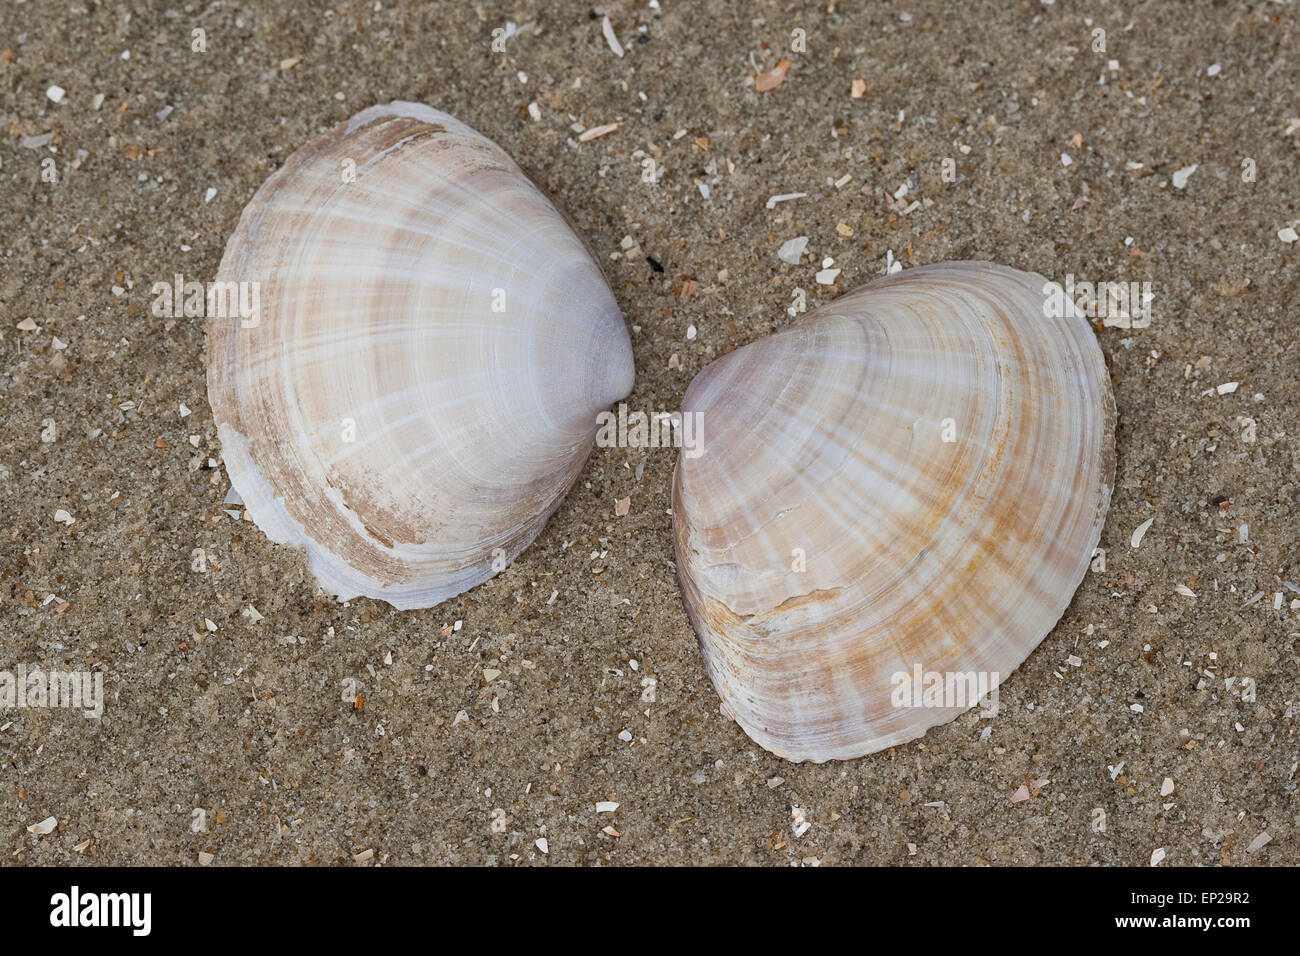 White trough clam, rayed trough shell, Strahlenkörbchen, Bunte Trogmuschel, Mactra corallina, Mactra stultorum, - Stock Image